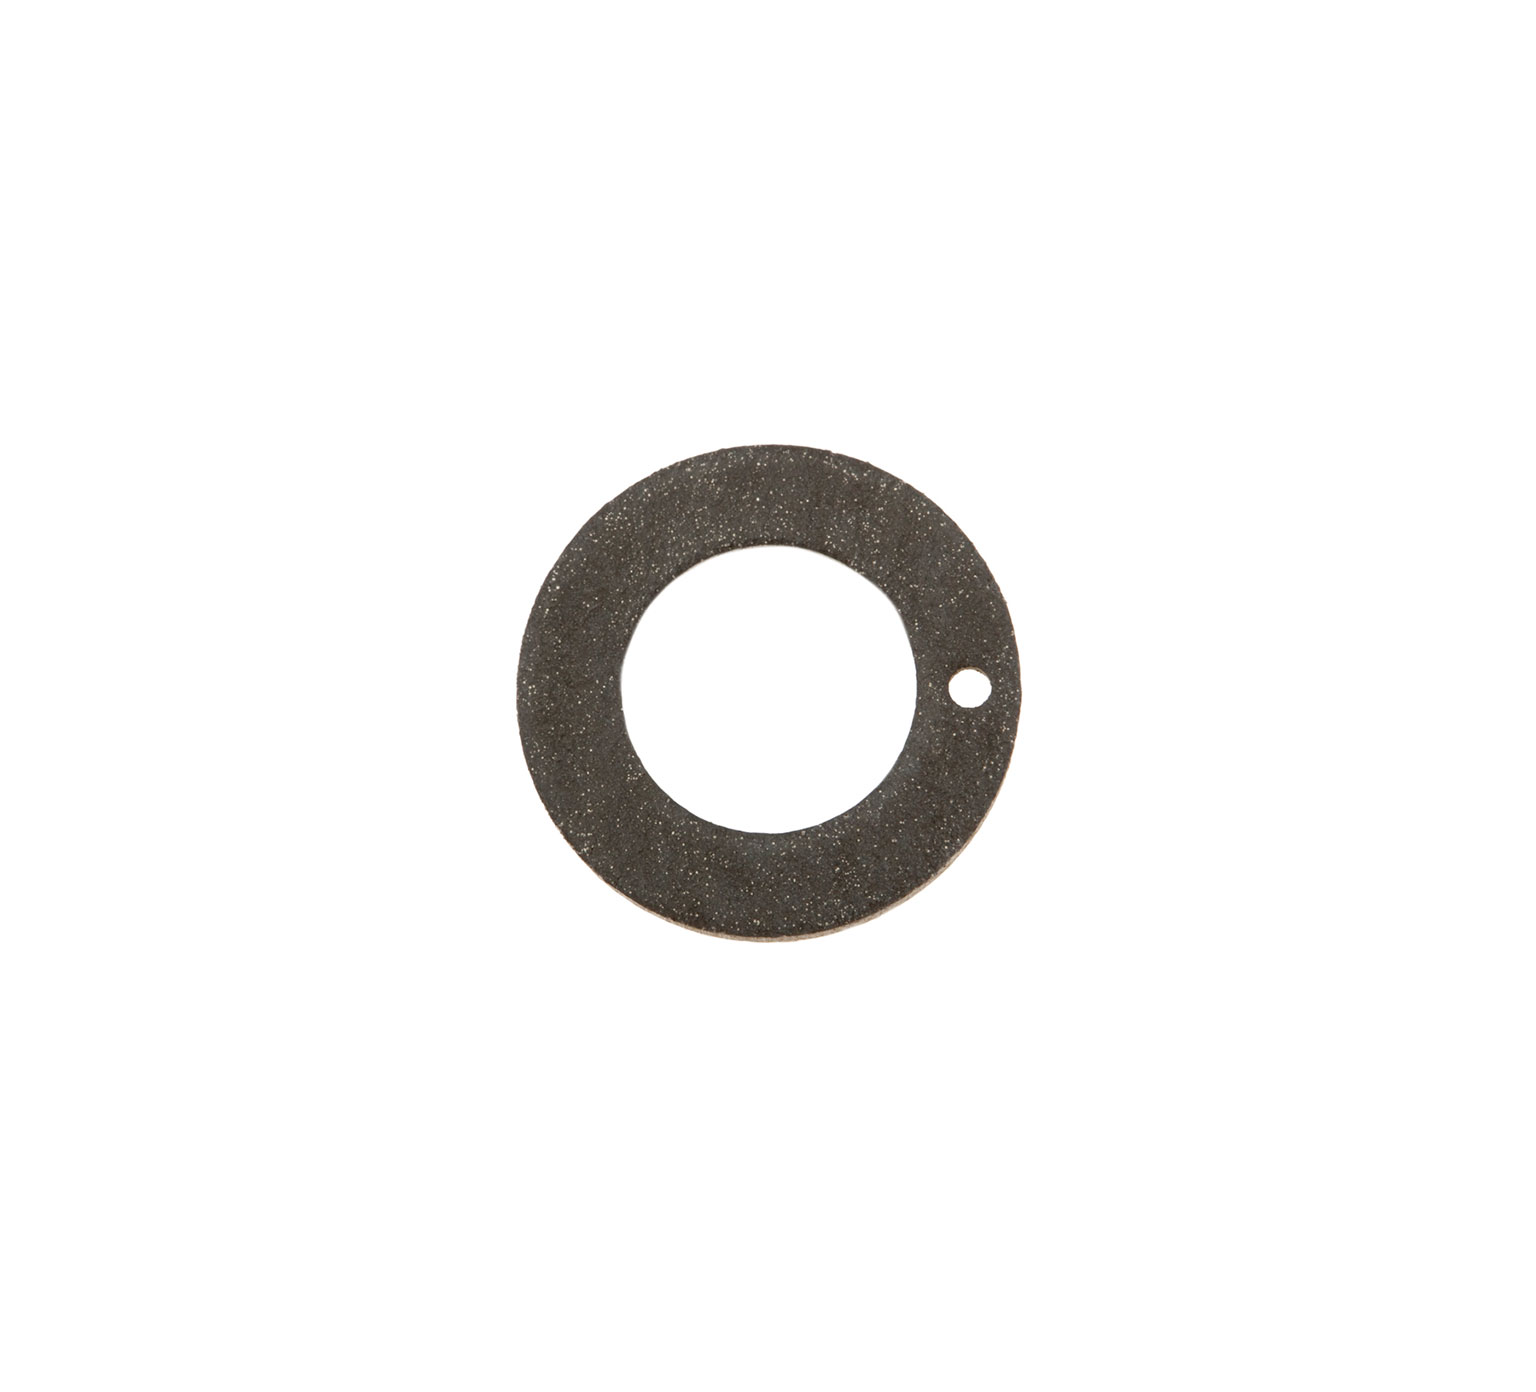 86860 Steel Thrust Washer - 0.87 OD x 0.55 ID x 0.06 in alt 1